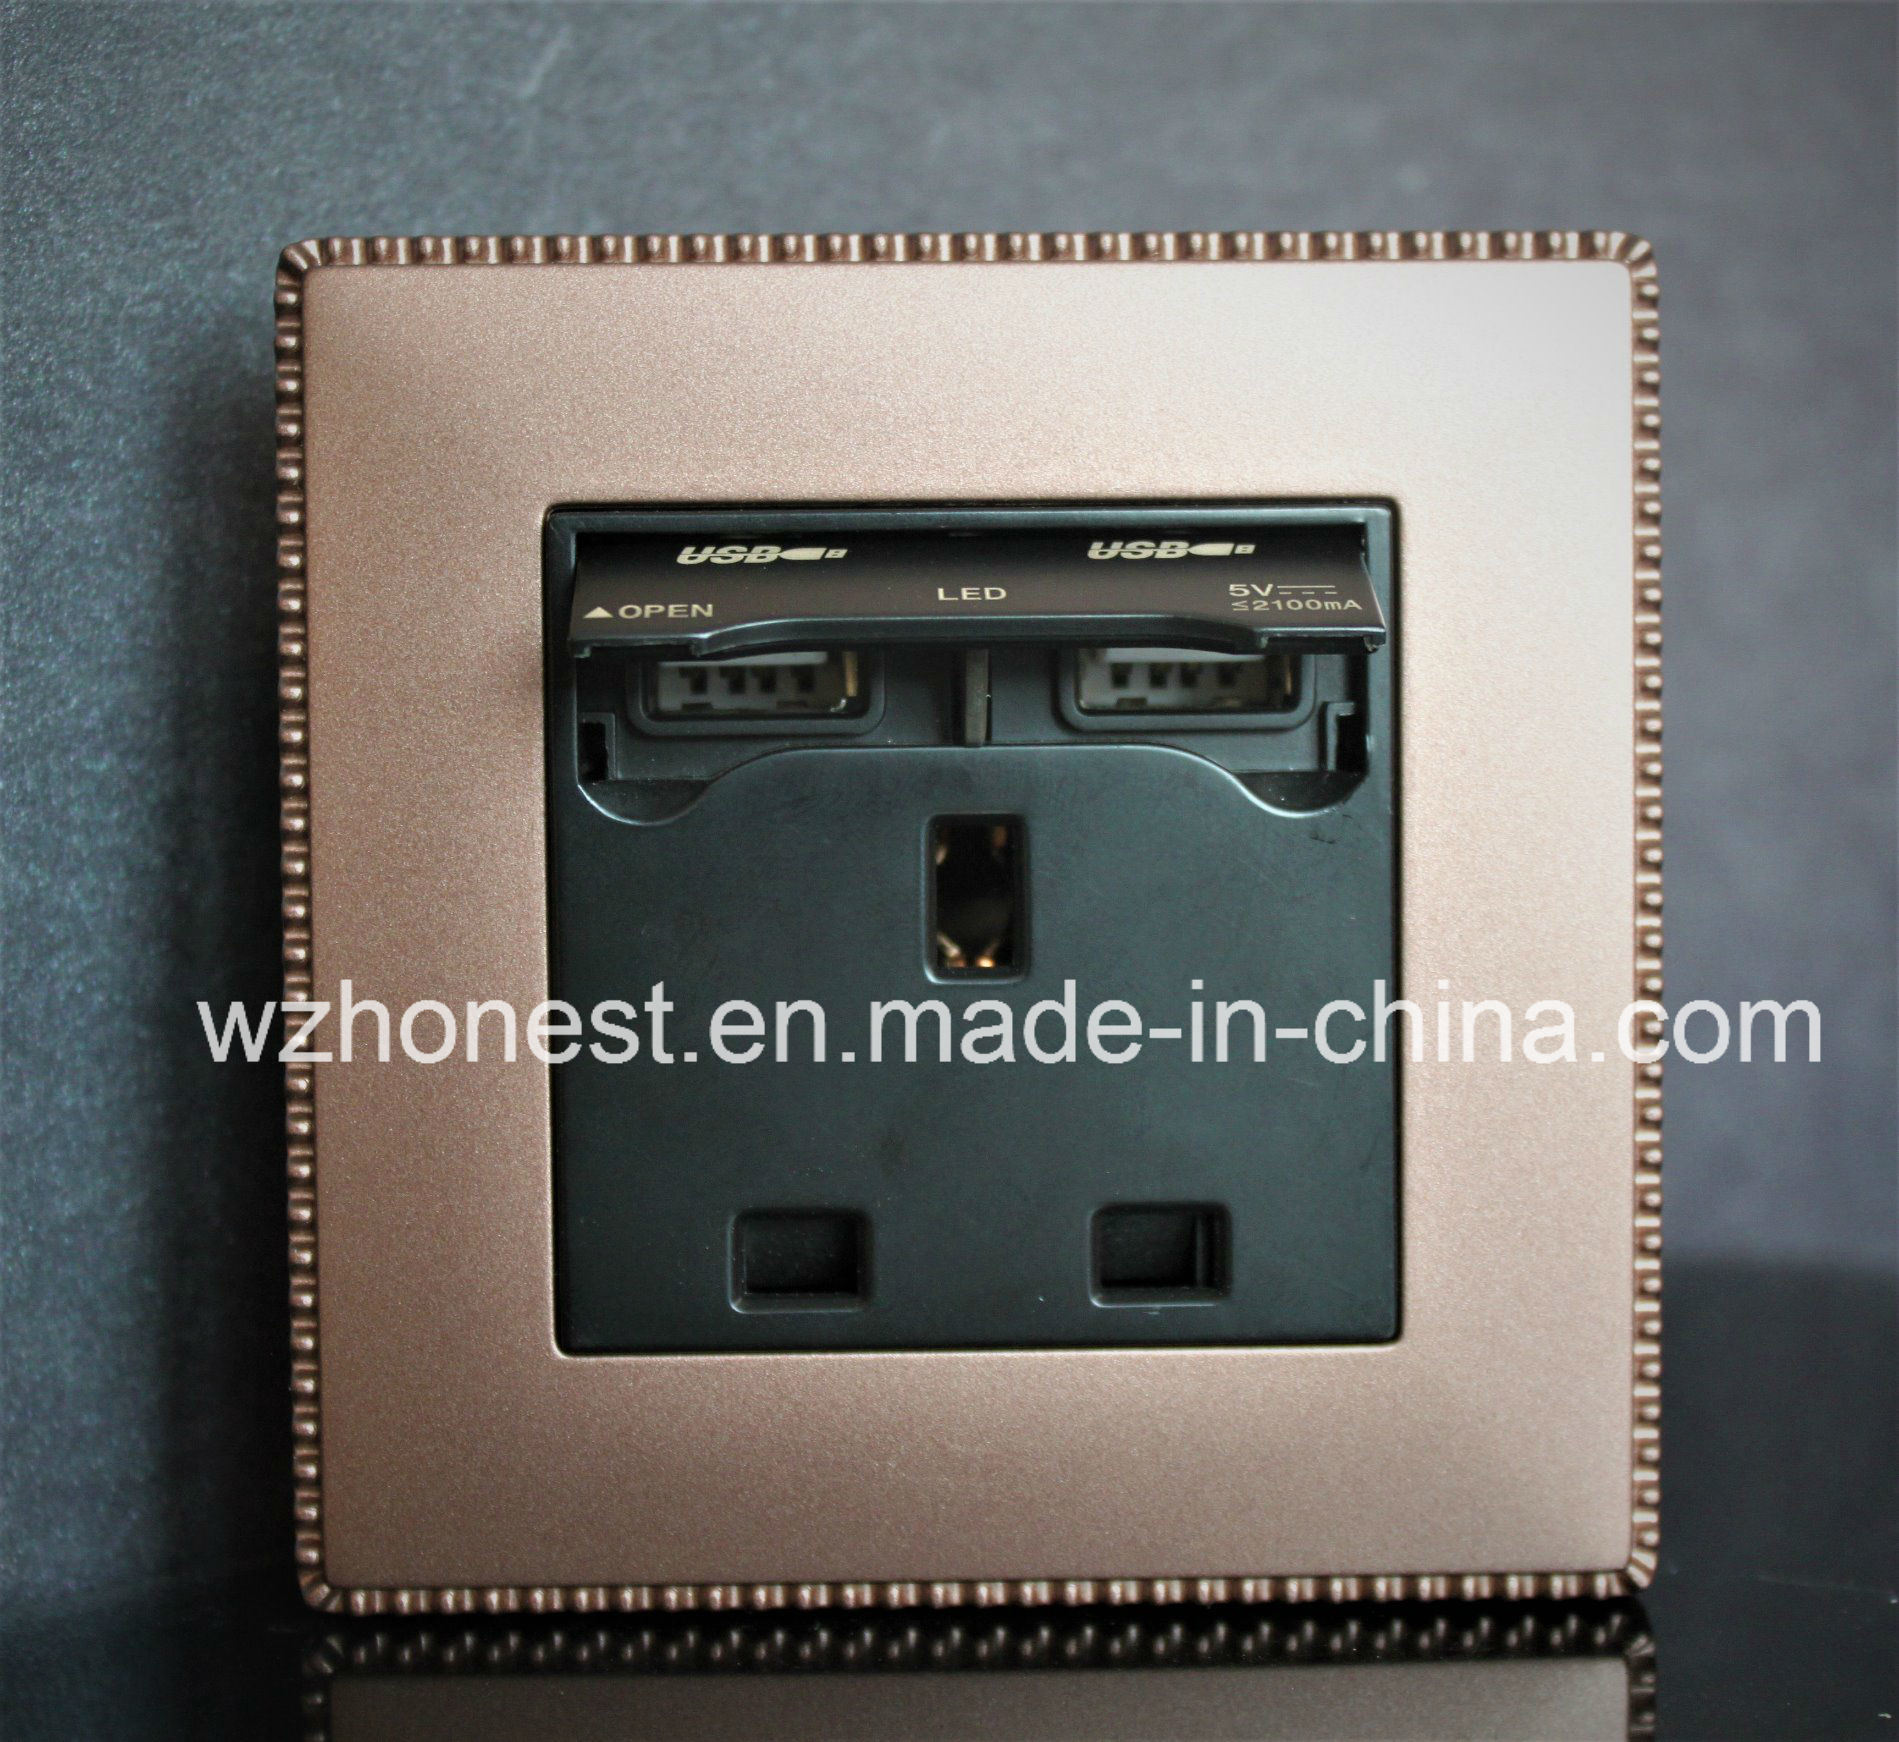 British 13A USB Socket with Double USB Charging Ports, 2100mA USB Port